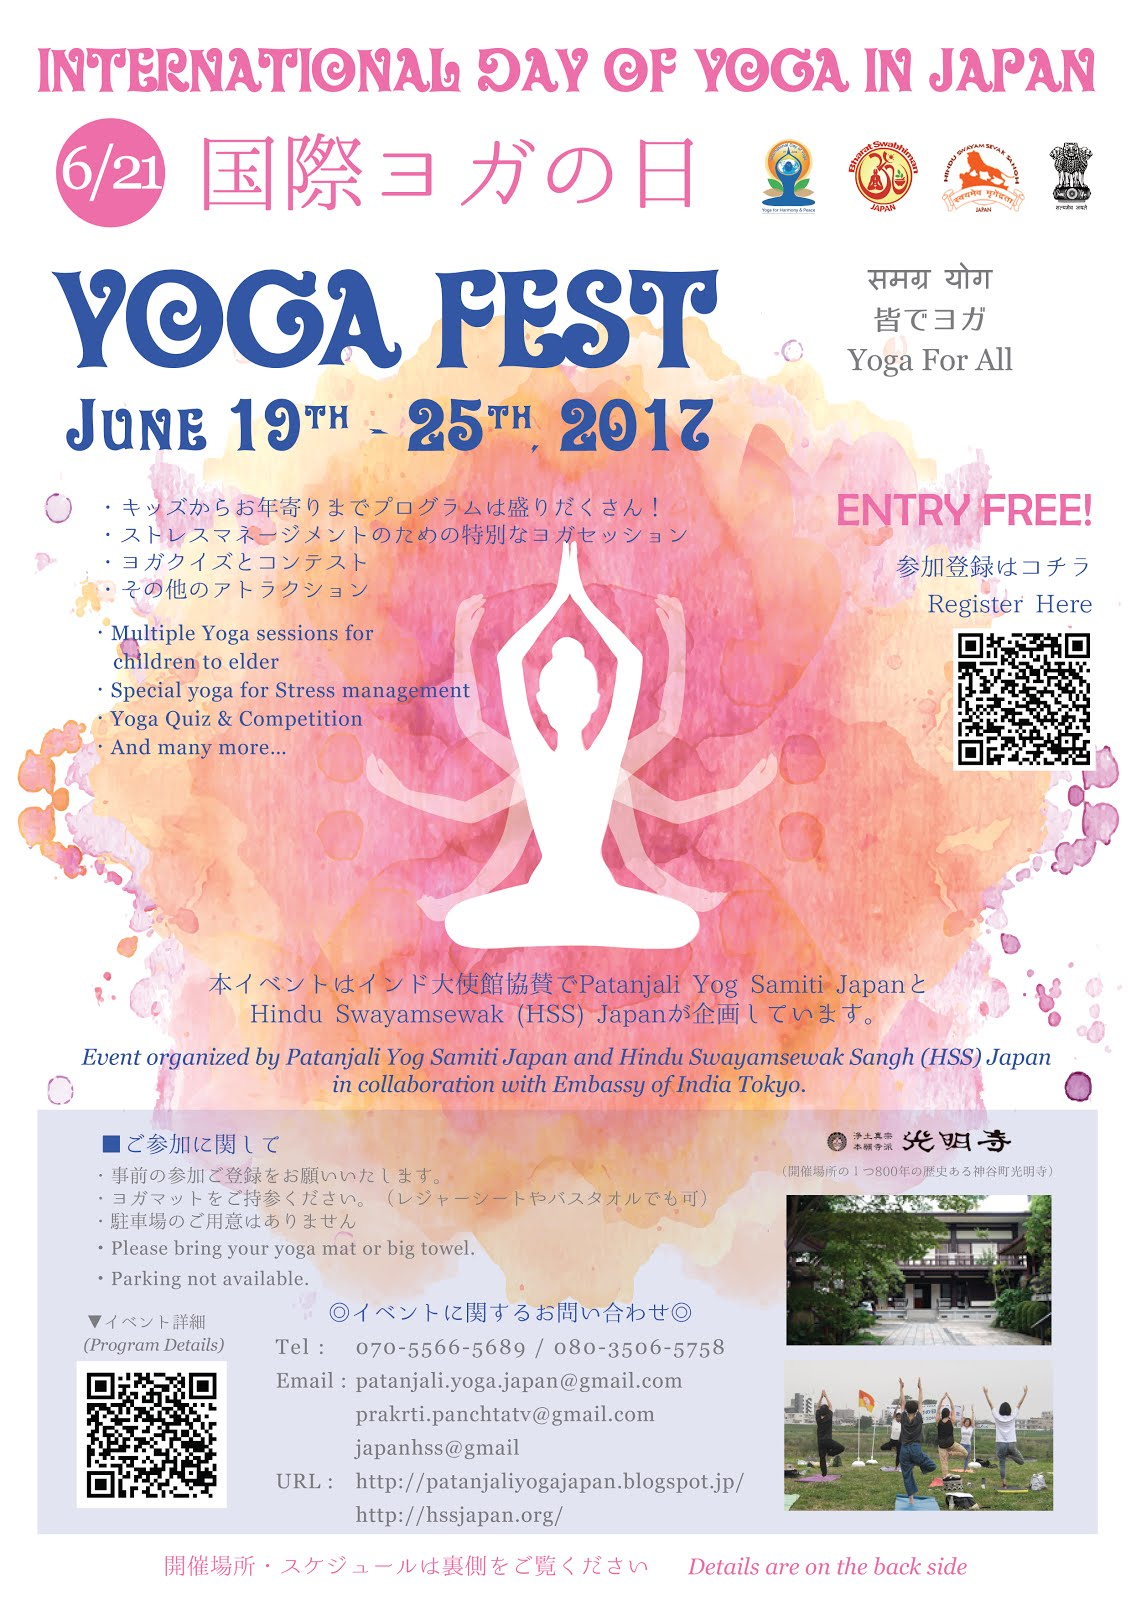 patanjali yoga samiti japan international day of yoga 2017 japan